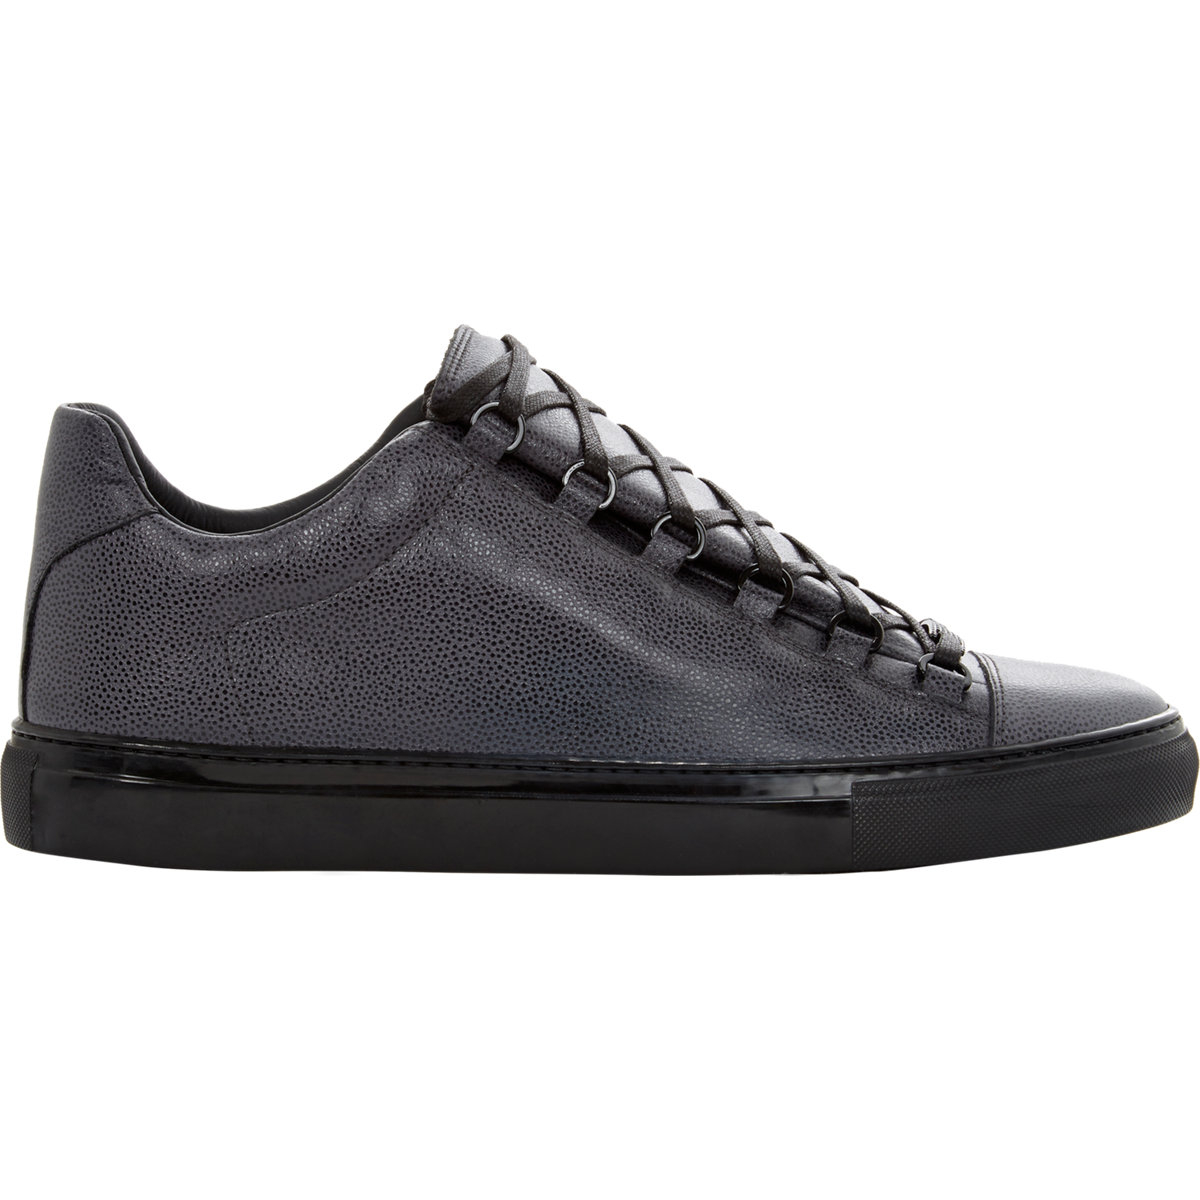 lyst balenciaga arena low top sneakers in gray for men. Black Bedroom Furniture Sets. Home Design Ideas